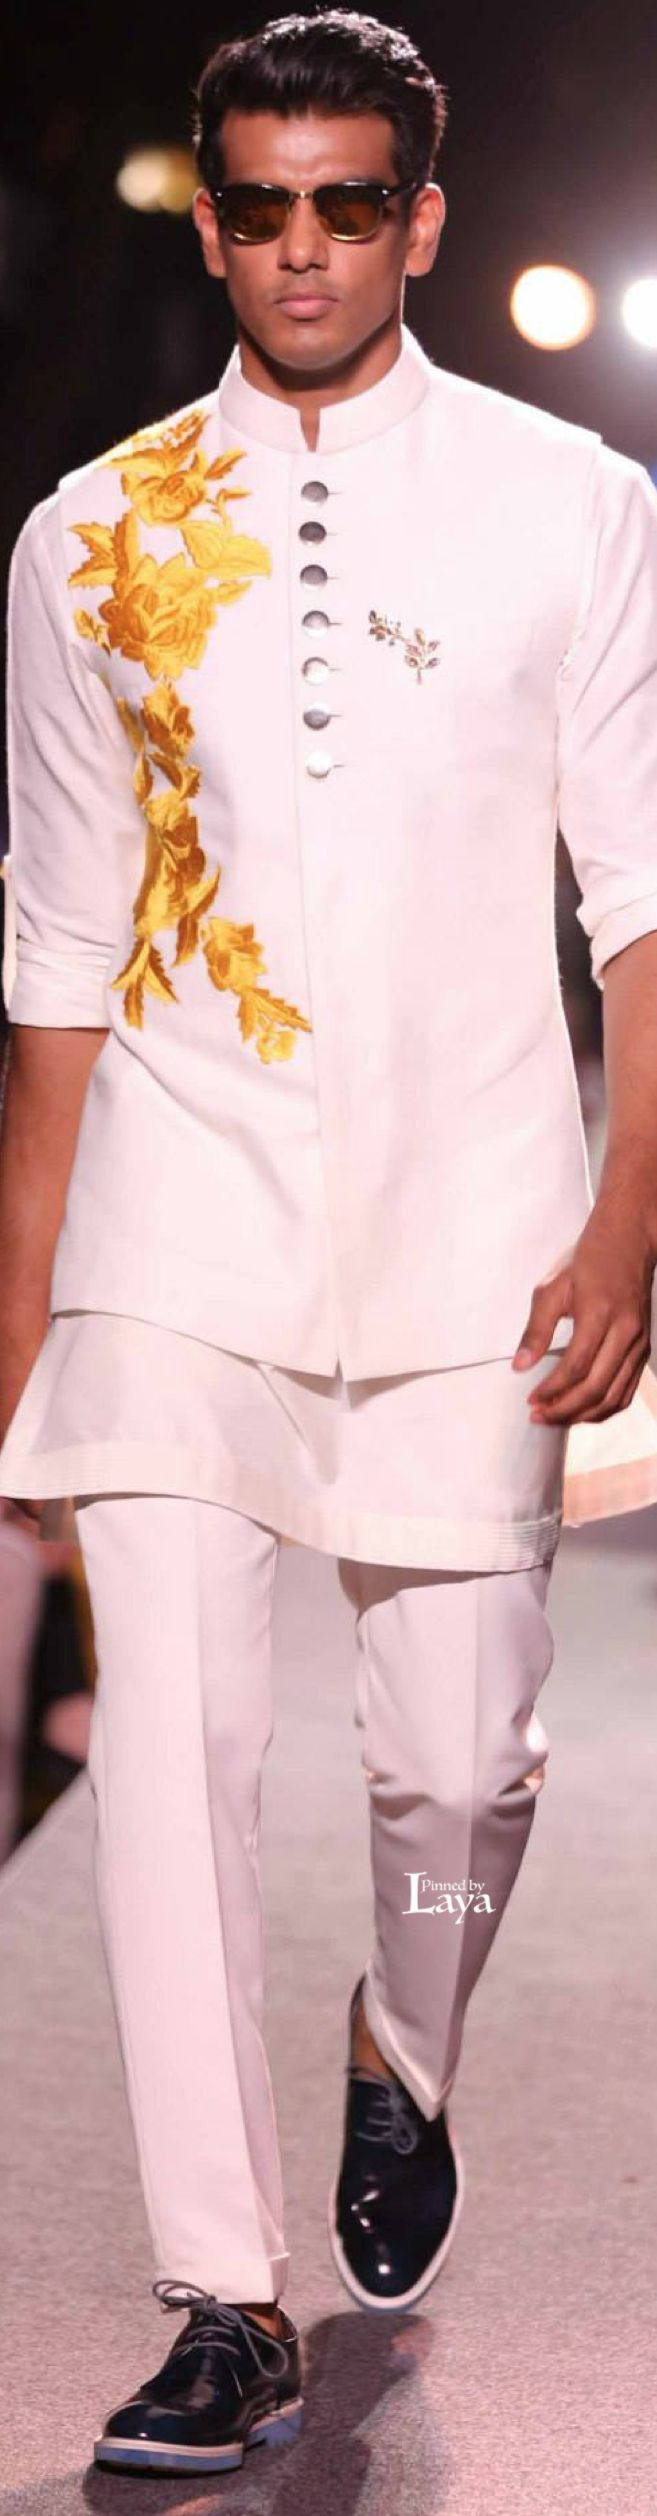 traditional indian menswear 2015 LFW - Google Search